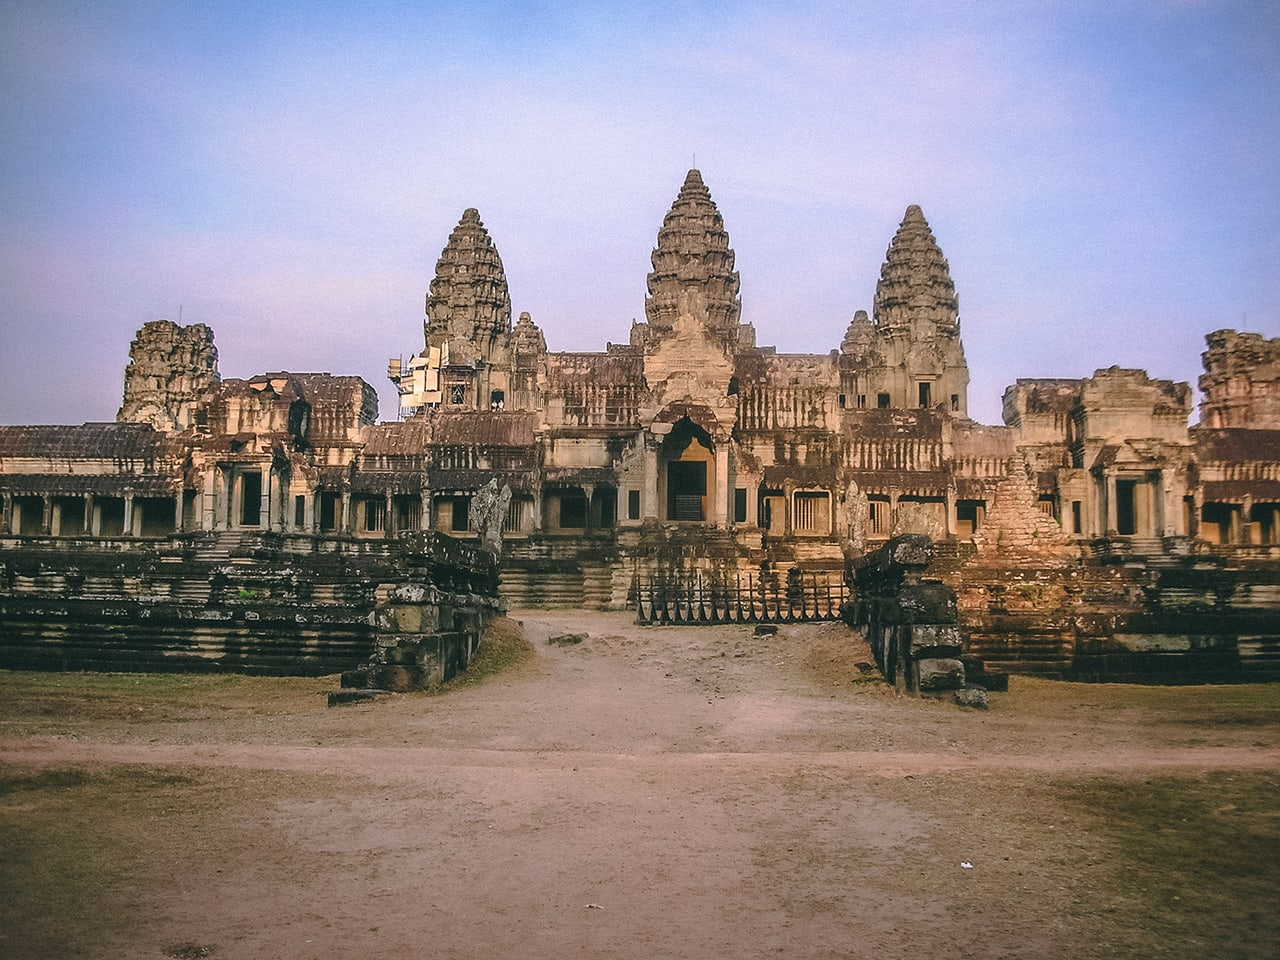 East gate of Angkor Wat, shortly after sunrise.